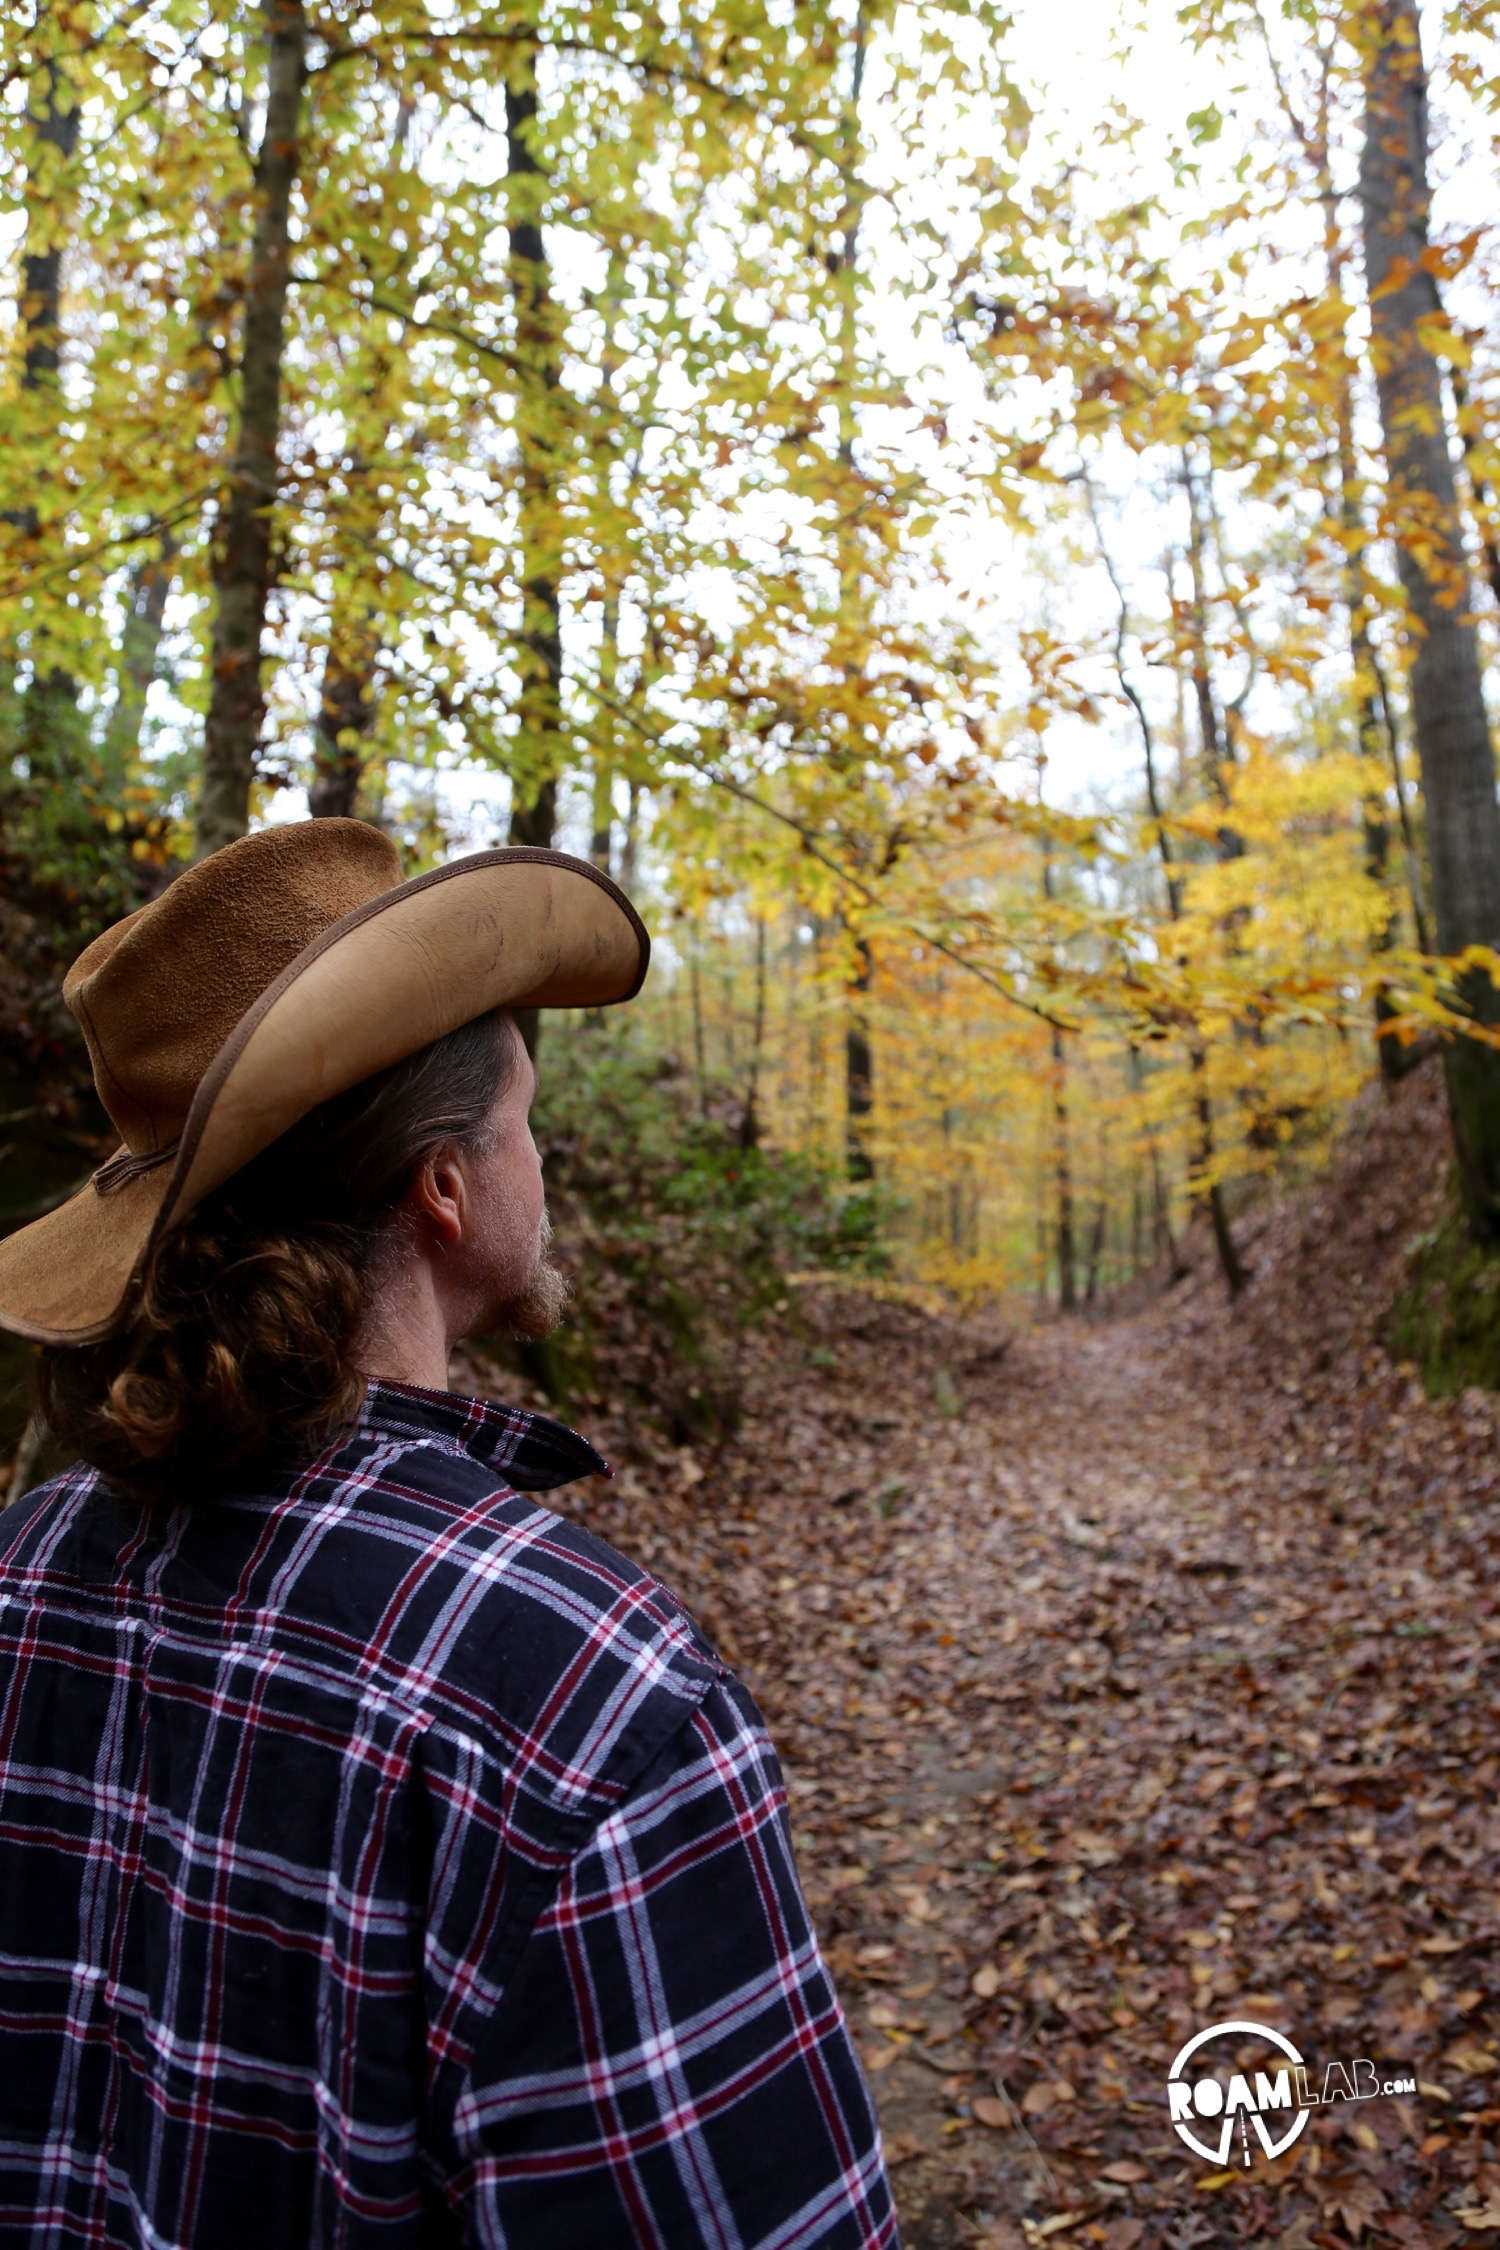 The Sunken Trace is the product of centuries of travel. Traders following the Natchez Trace wore down the trail so that, in places, the untrod ground may be above one's head.